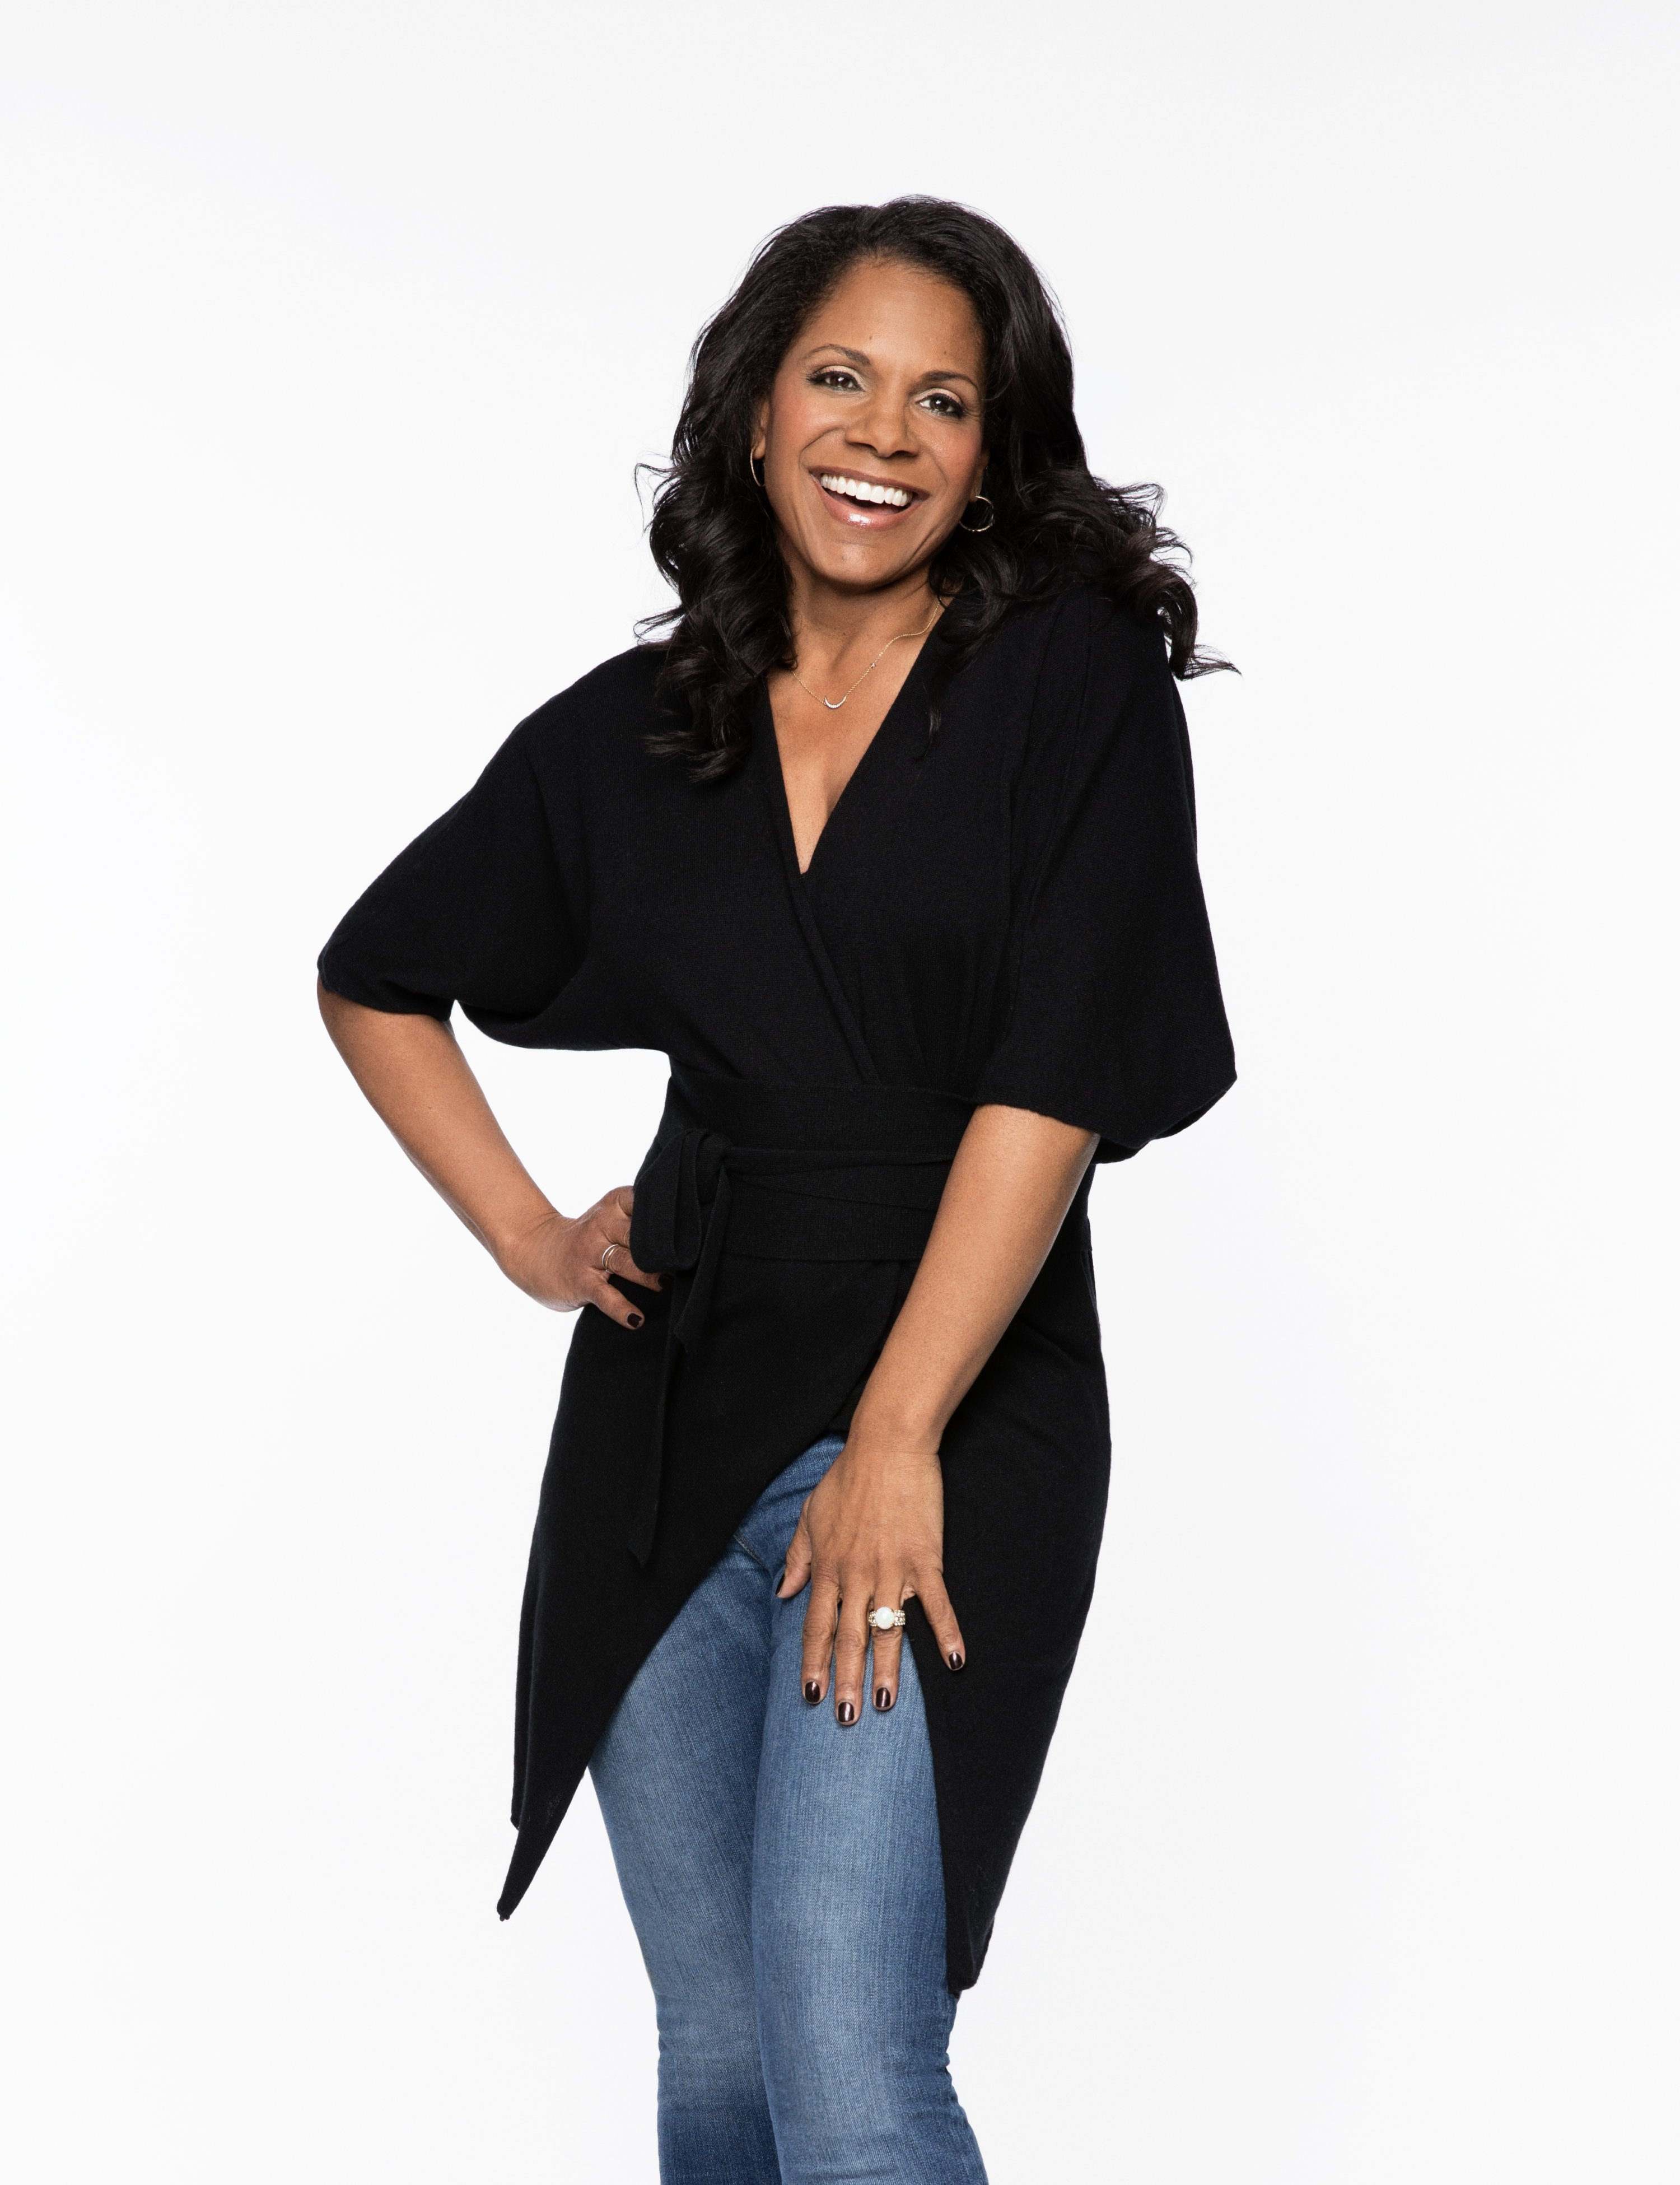 Audra McDonald Advises You Not to Take No for an Answer